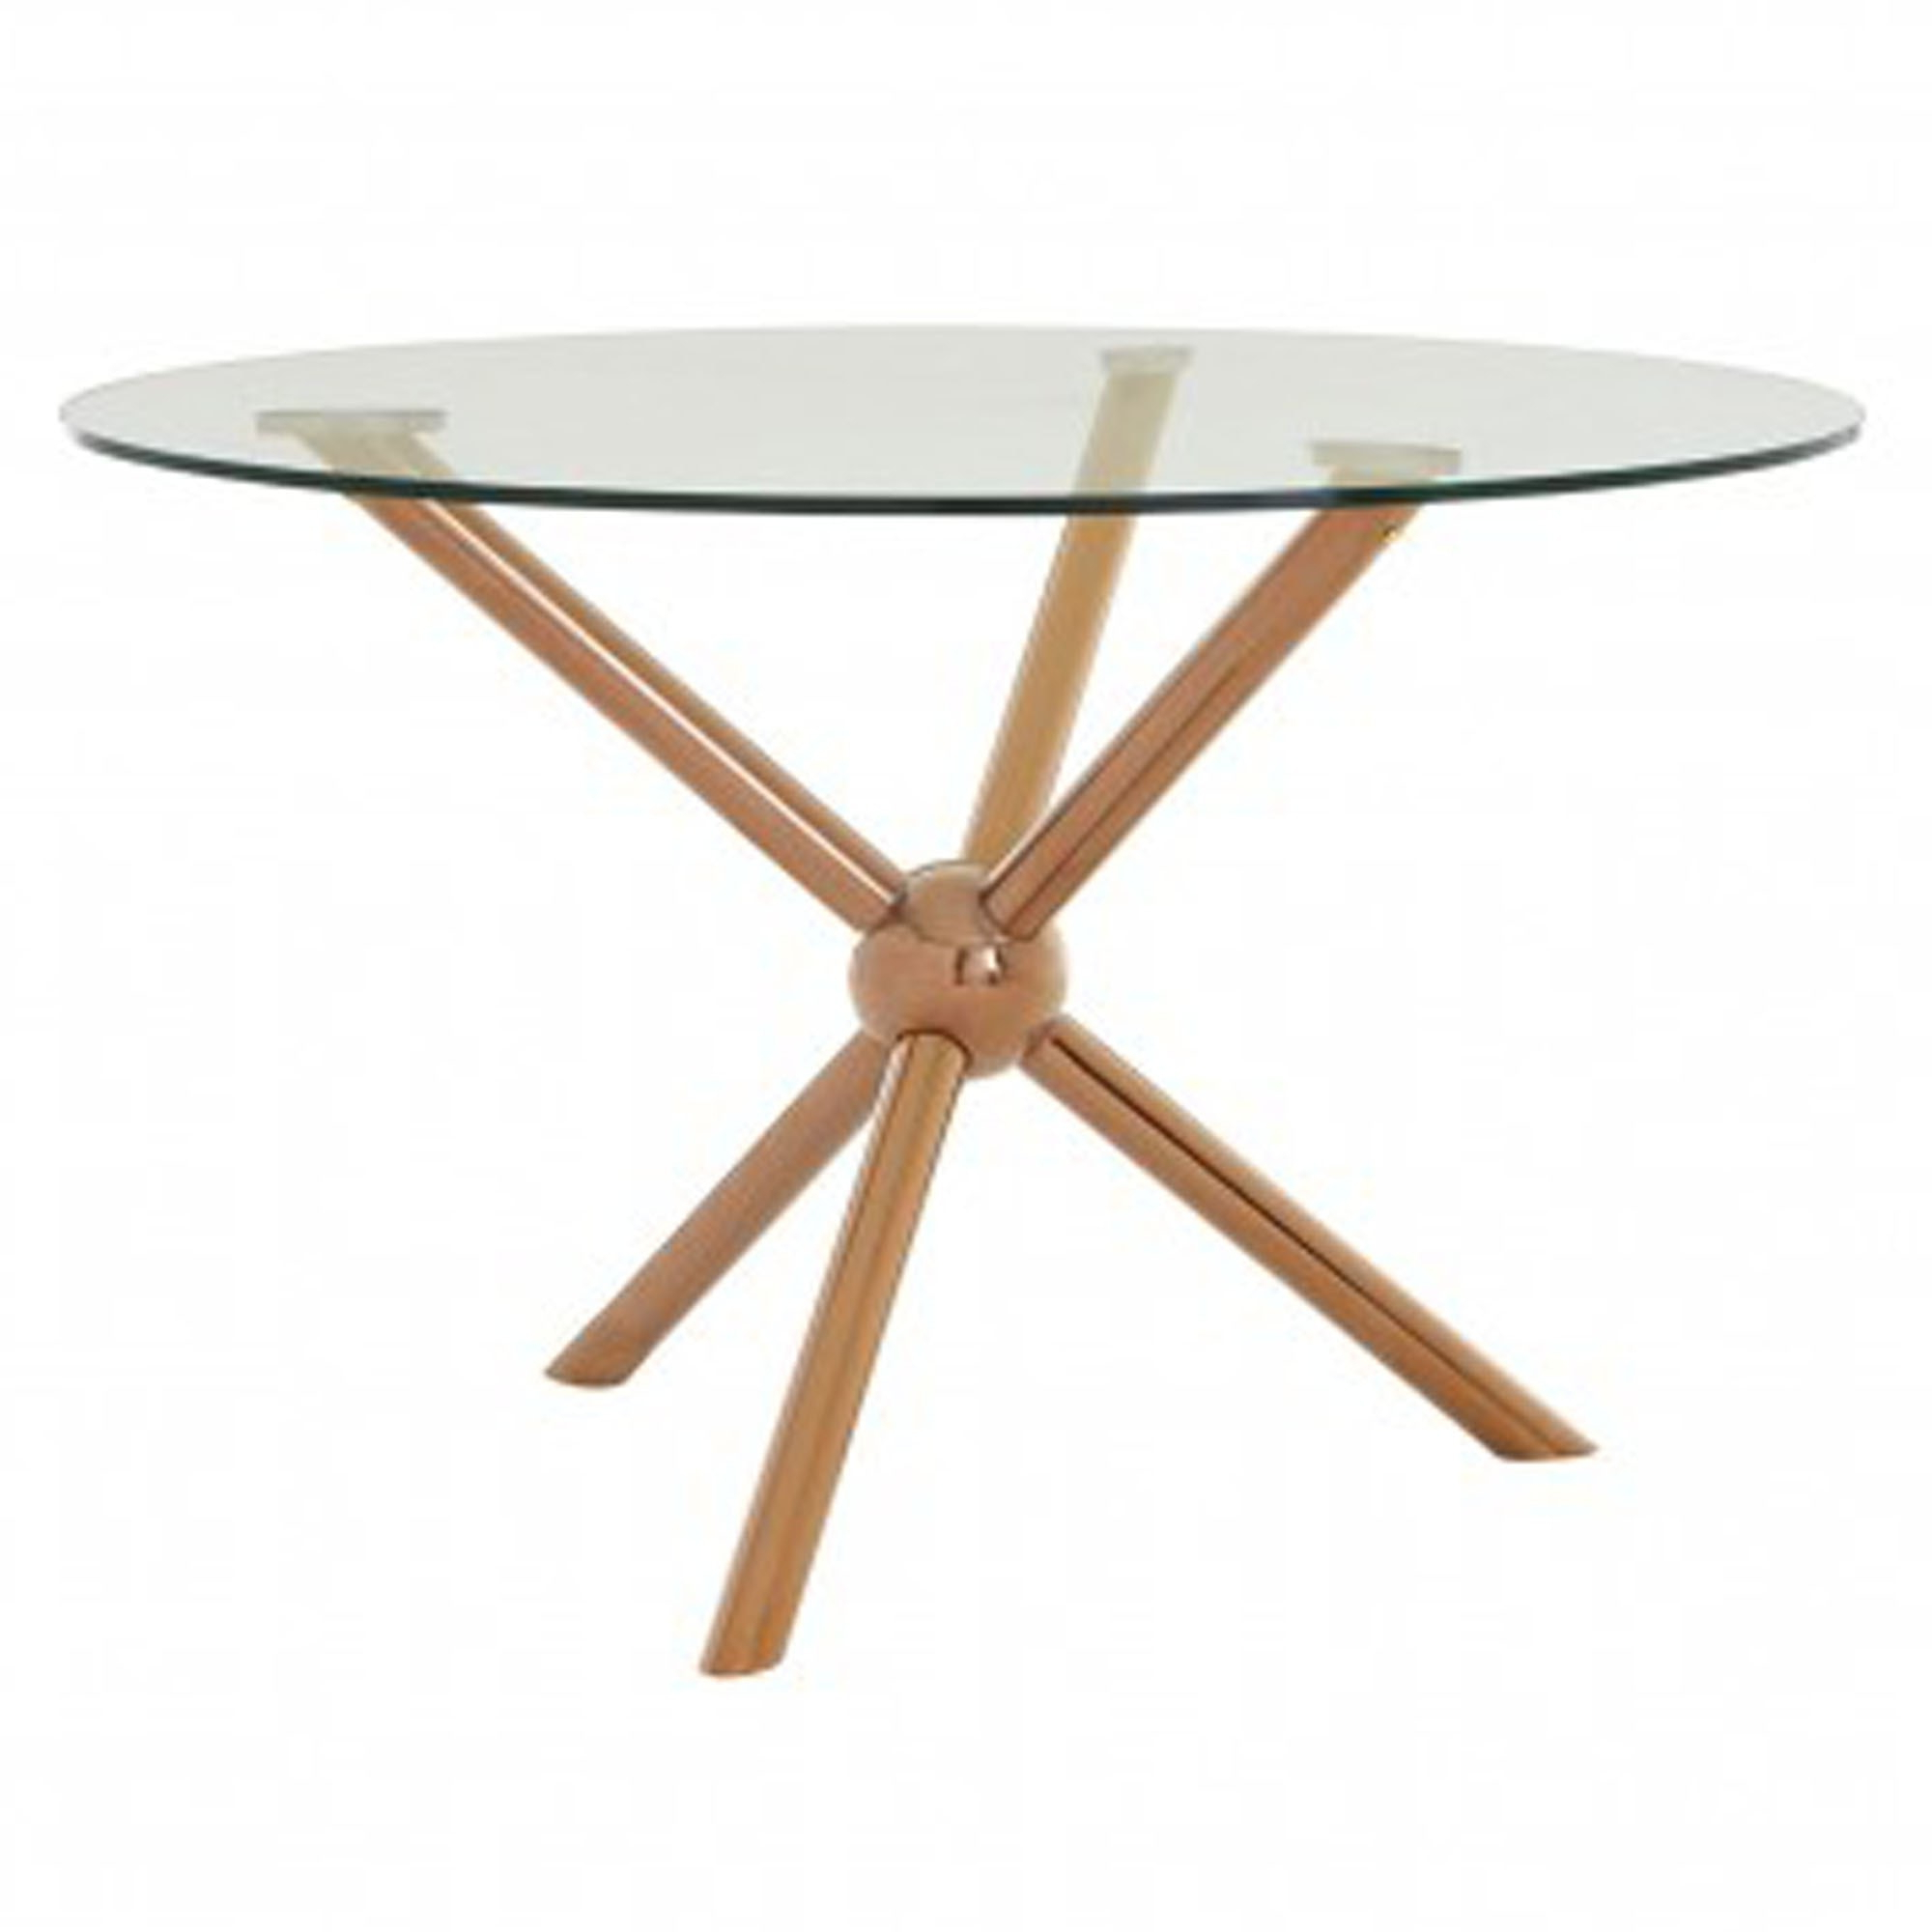 Most Recent Modern Gold Dining Tables With Clear Glass Throughout Novo Round / Rose Gold Dining Table (Gallery 15 of 30)